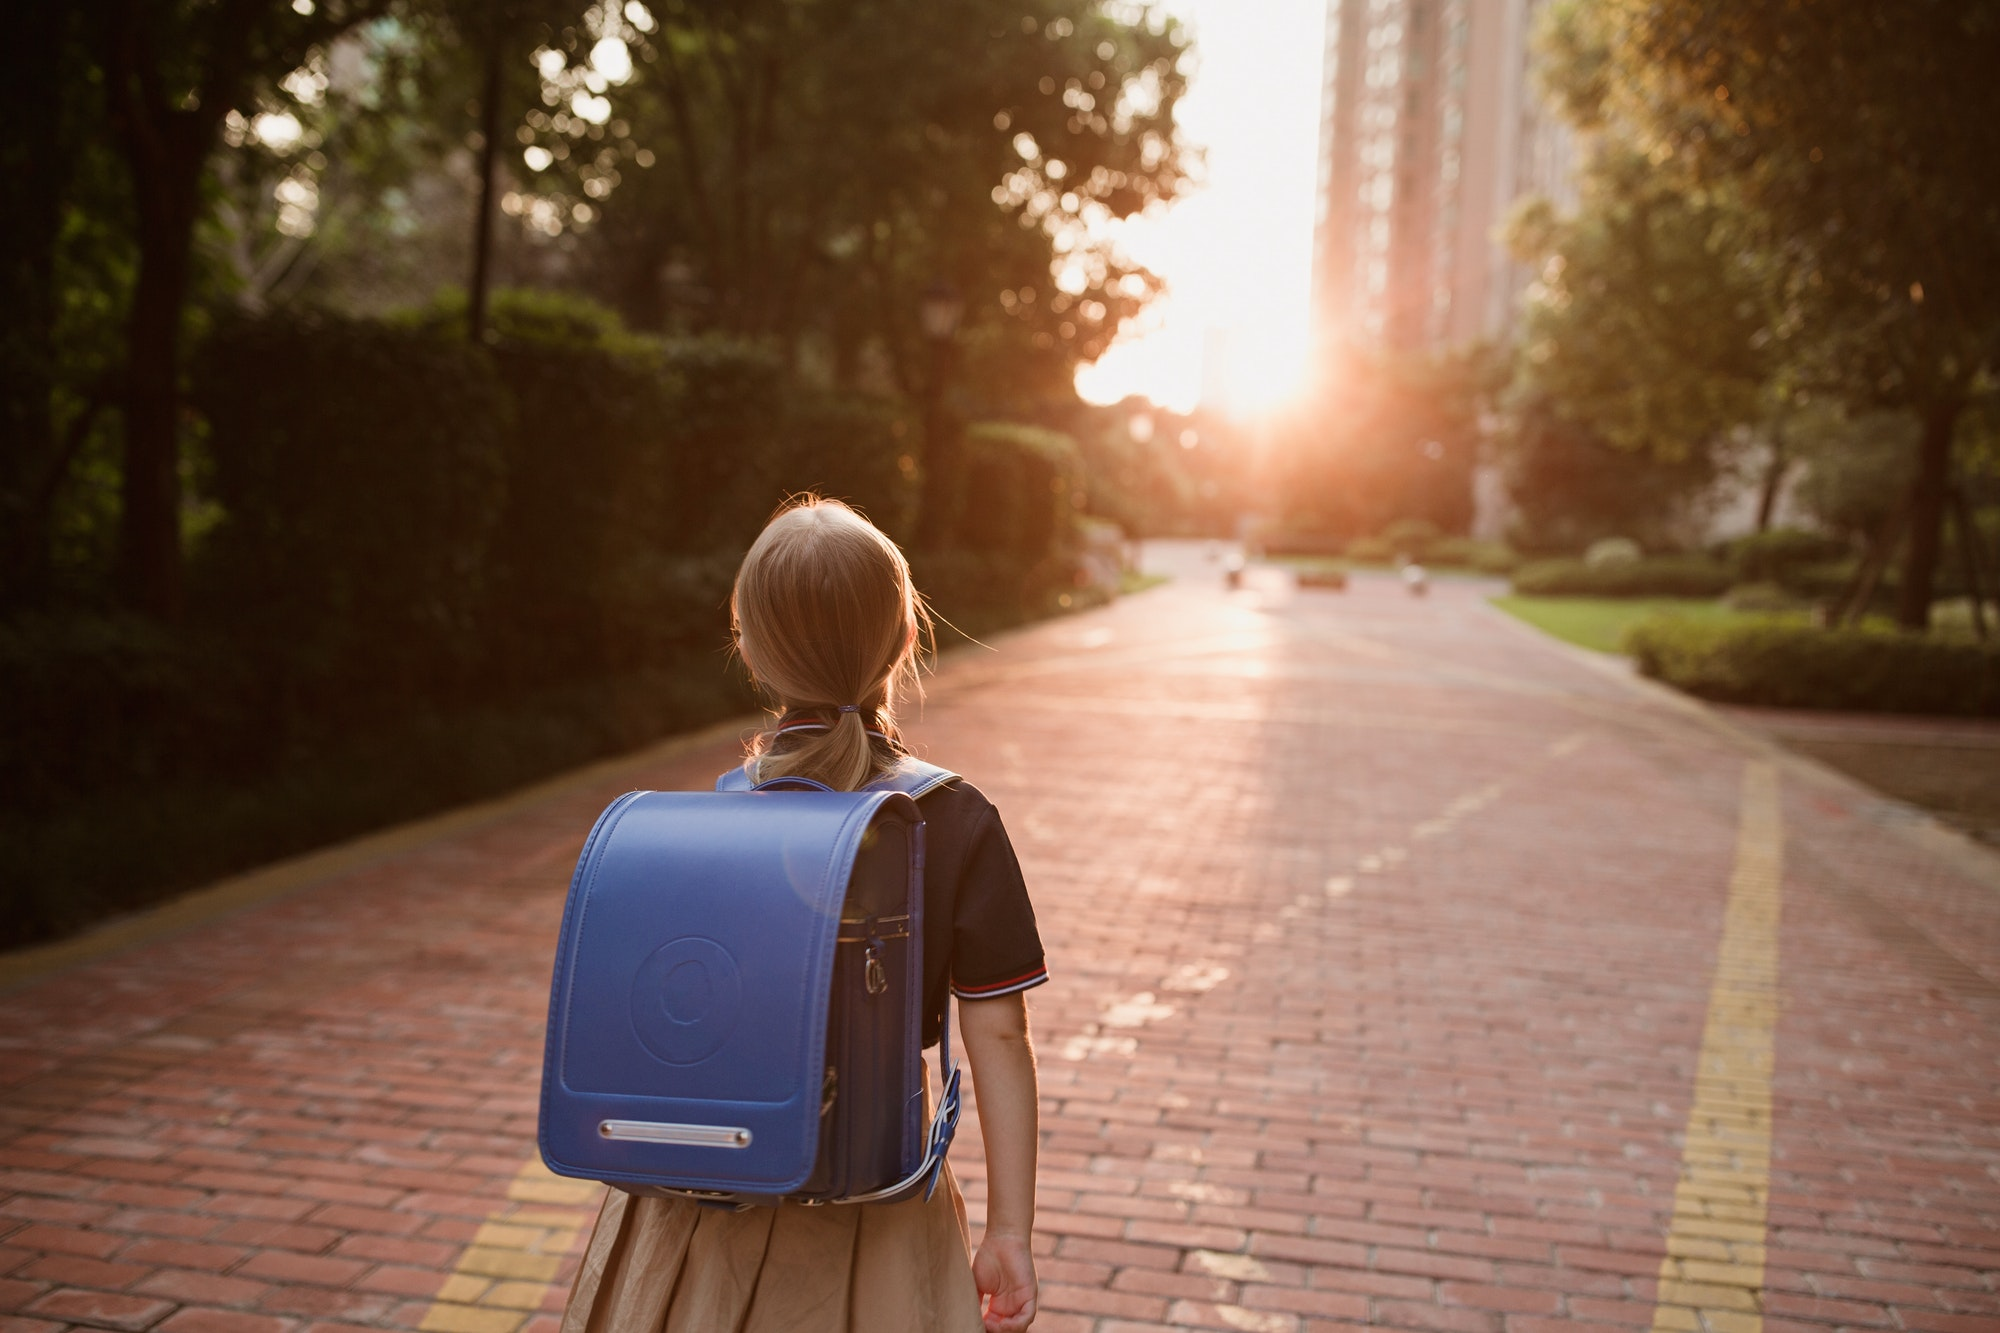 Schoolgirl back to school. Pupil in uniform and backpack outdoor